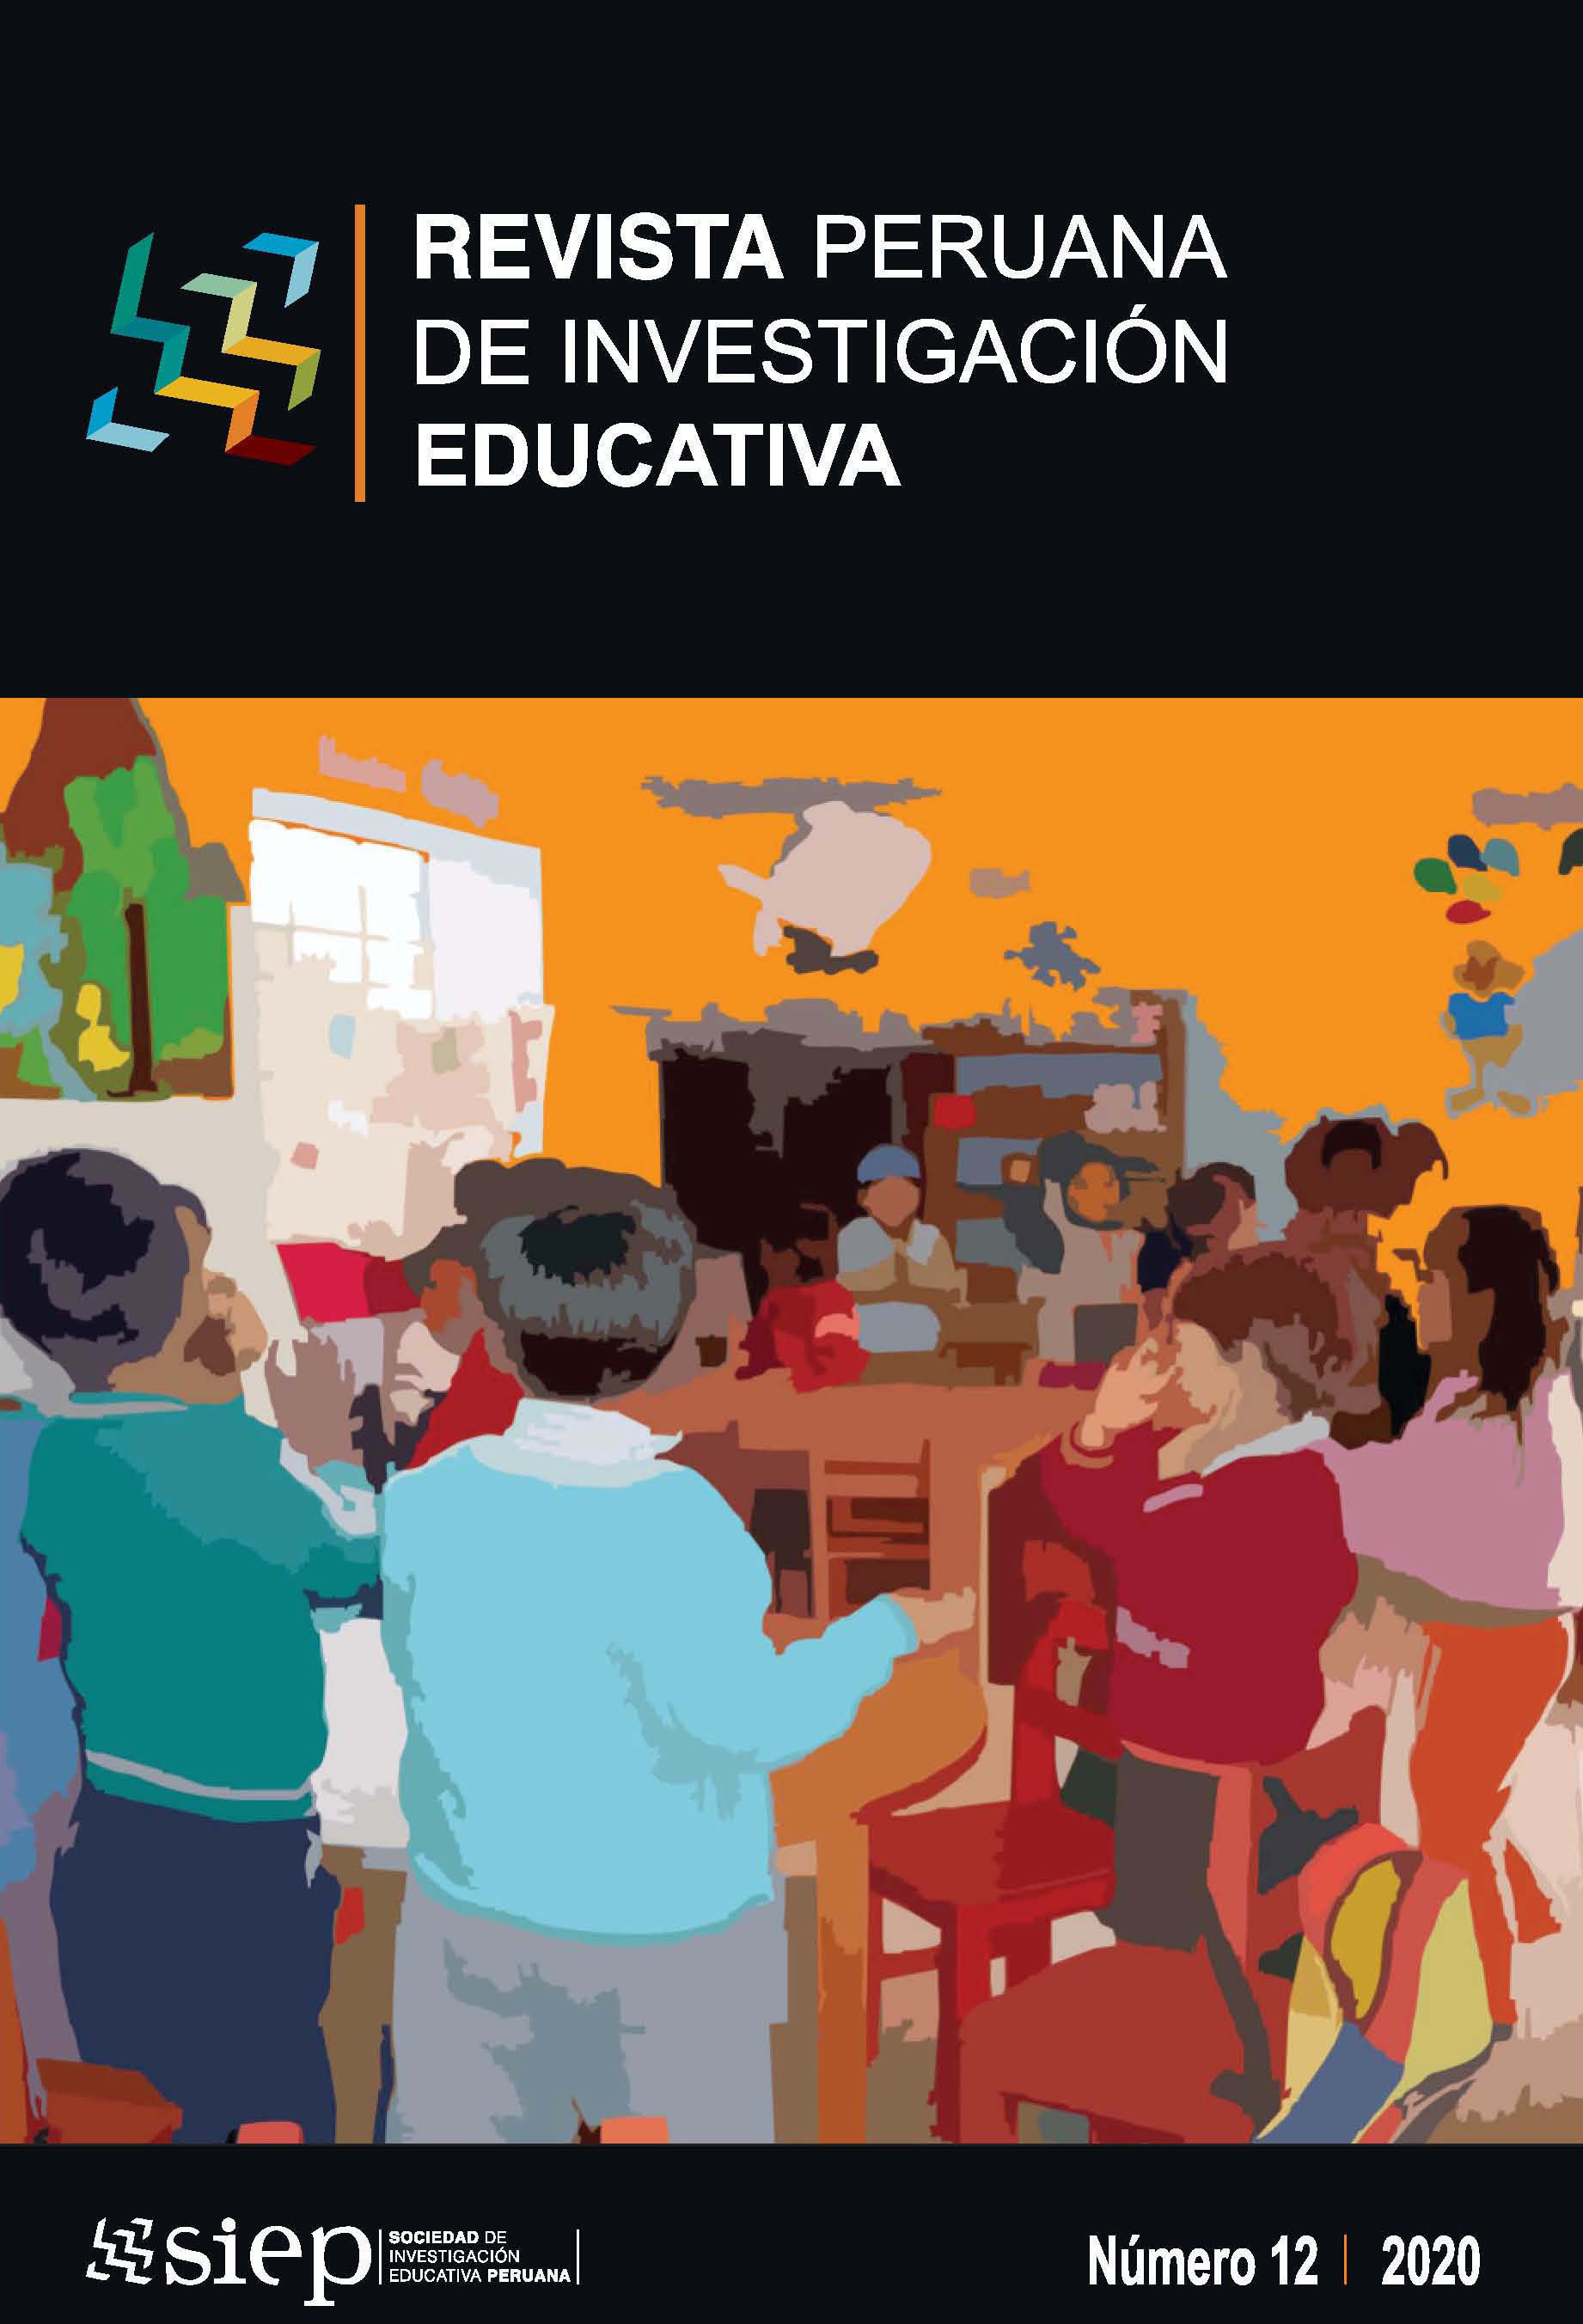 Revista Peruana de Investigación Educativa Vol.12, No12, 2020